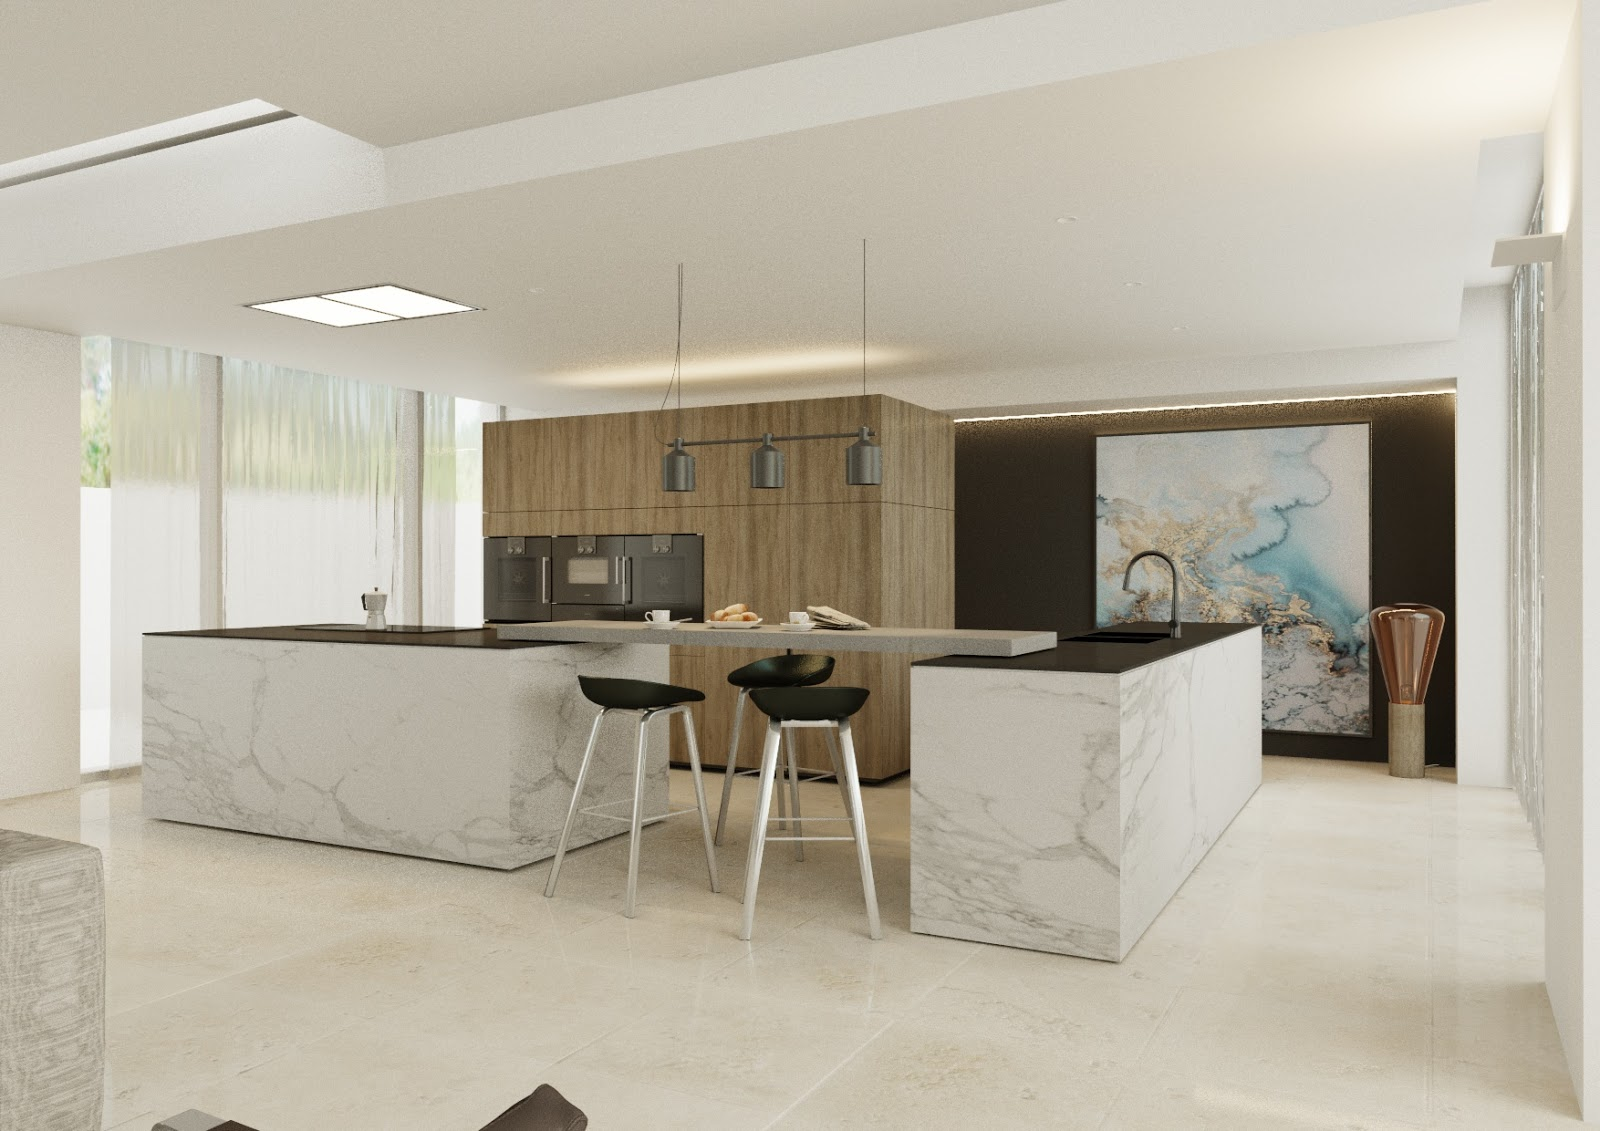 Minosa modern kitchen design requires contemporary approach - Images of modern kitchen designs ...